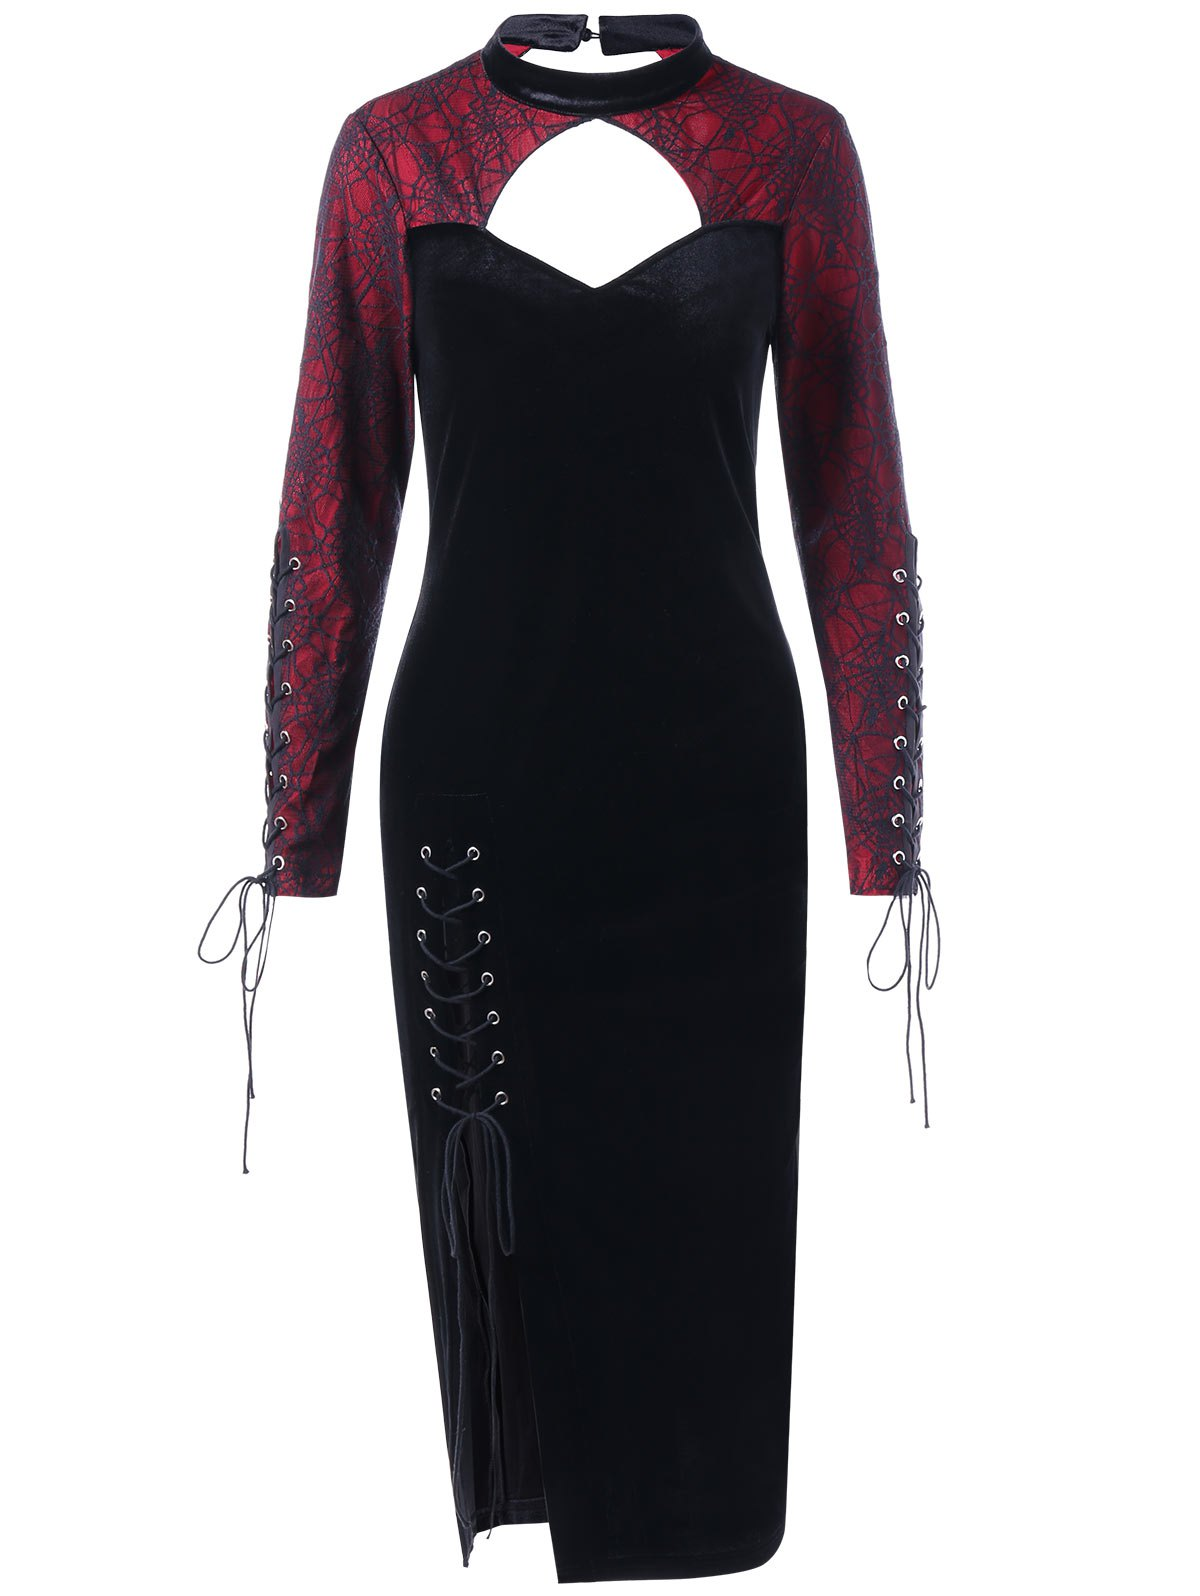 Halloween Spider Lace Inset Velvet Slit DressWOMEN<br><br>Size: XL; Color: BLACK; Style: Vintage; Material: Polyester; Silhouette: Sheath; Dresses Length: Mid-Calf; Neckline: Mock Neck; Sleeve Length: Long Sleeves; Embellishment: Criss-Cross,Lace; Pattern Type: Others; With Belt: No; Season: Fall,Spring; Weight: 0.4000kg; Package Contents: 1 x Dress; Occasion: Casual ,Club,Night Out;